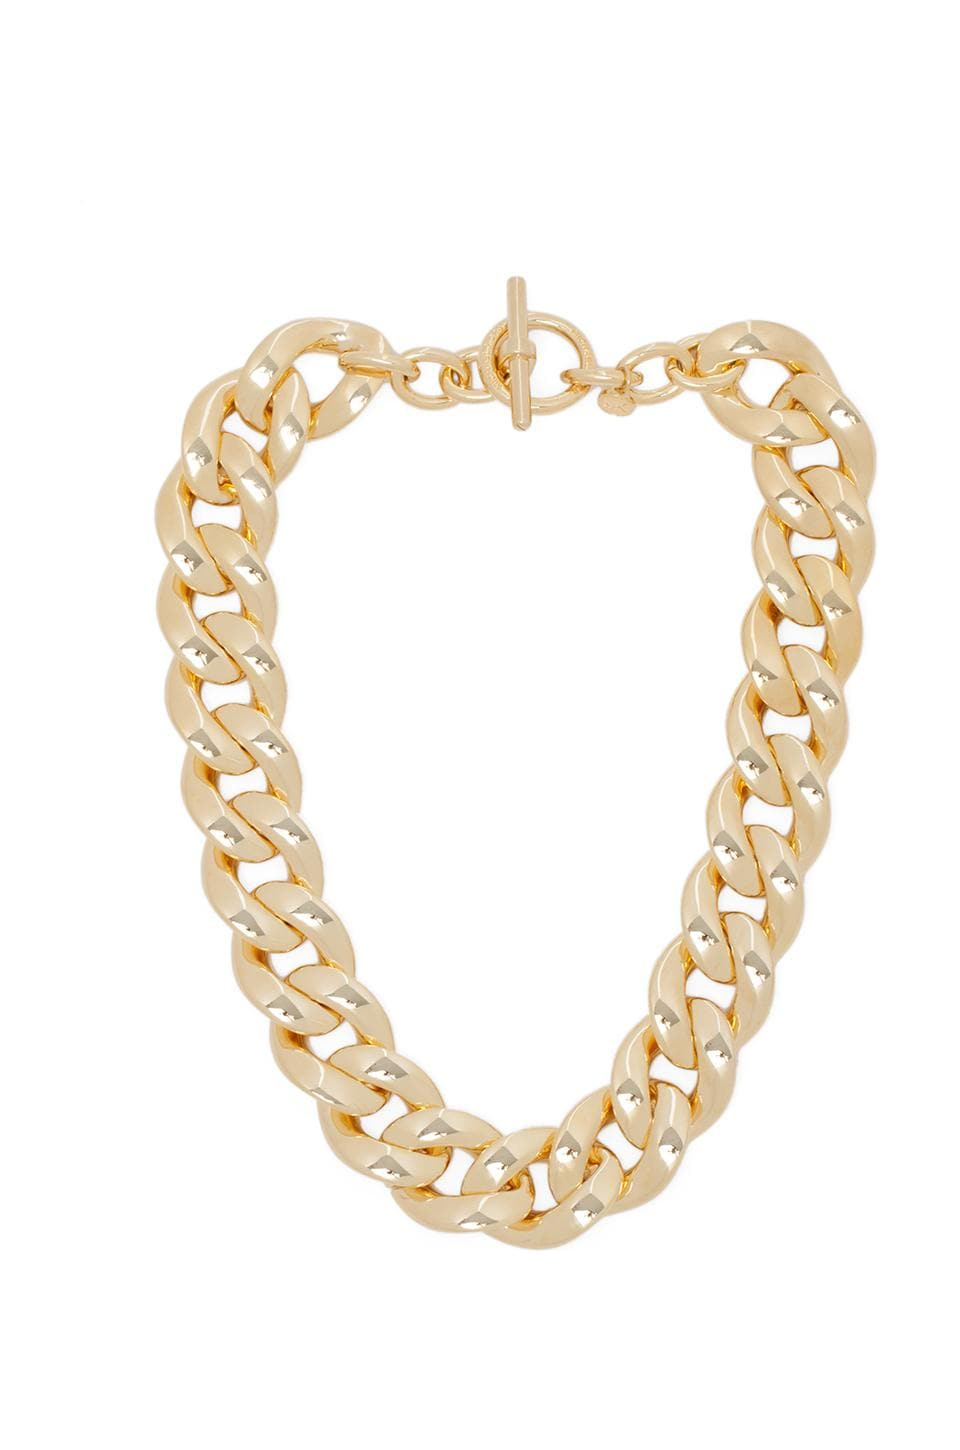 Michael Kors Chain Necklace in Gold